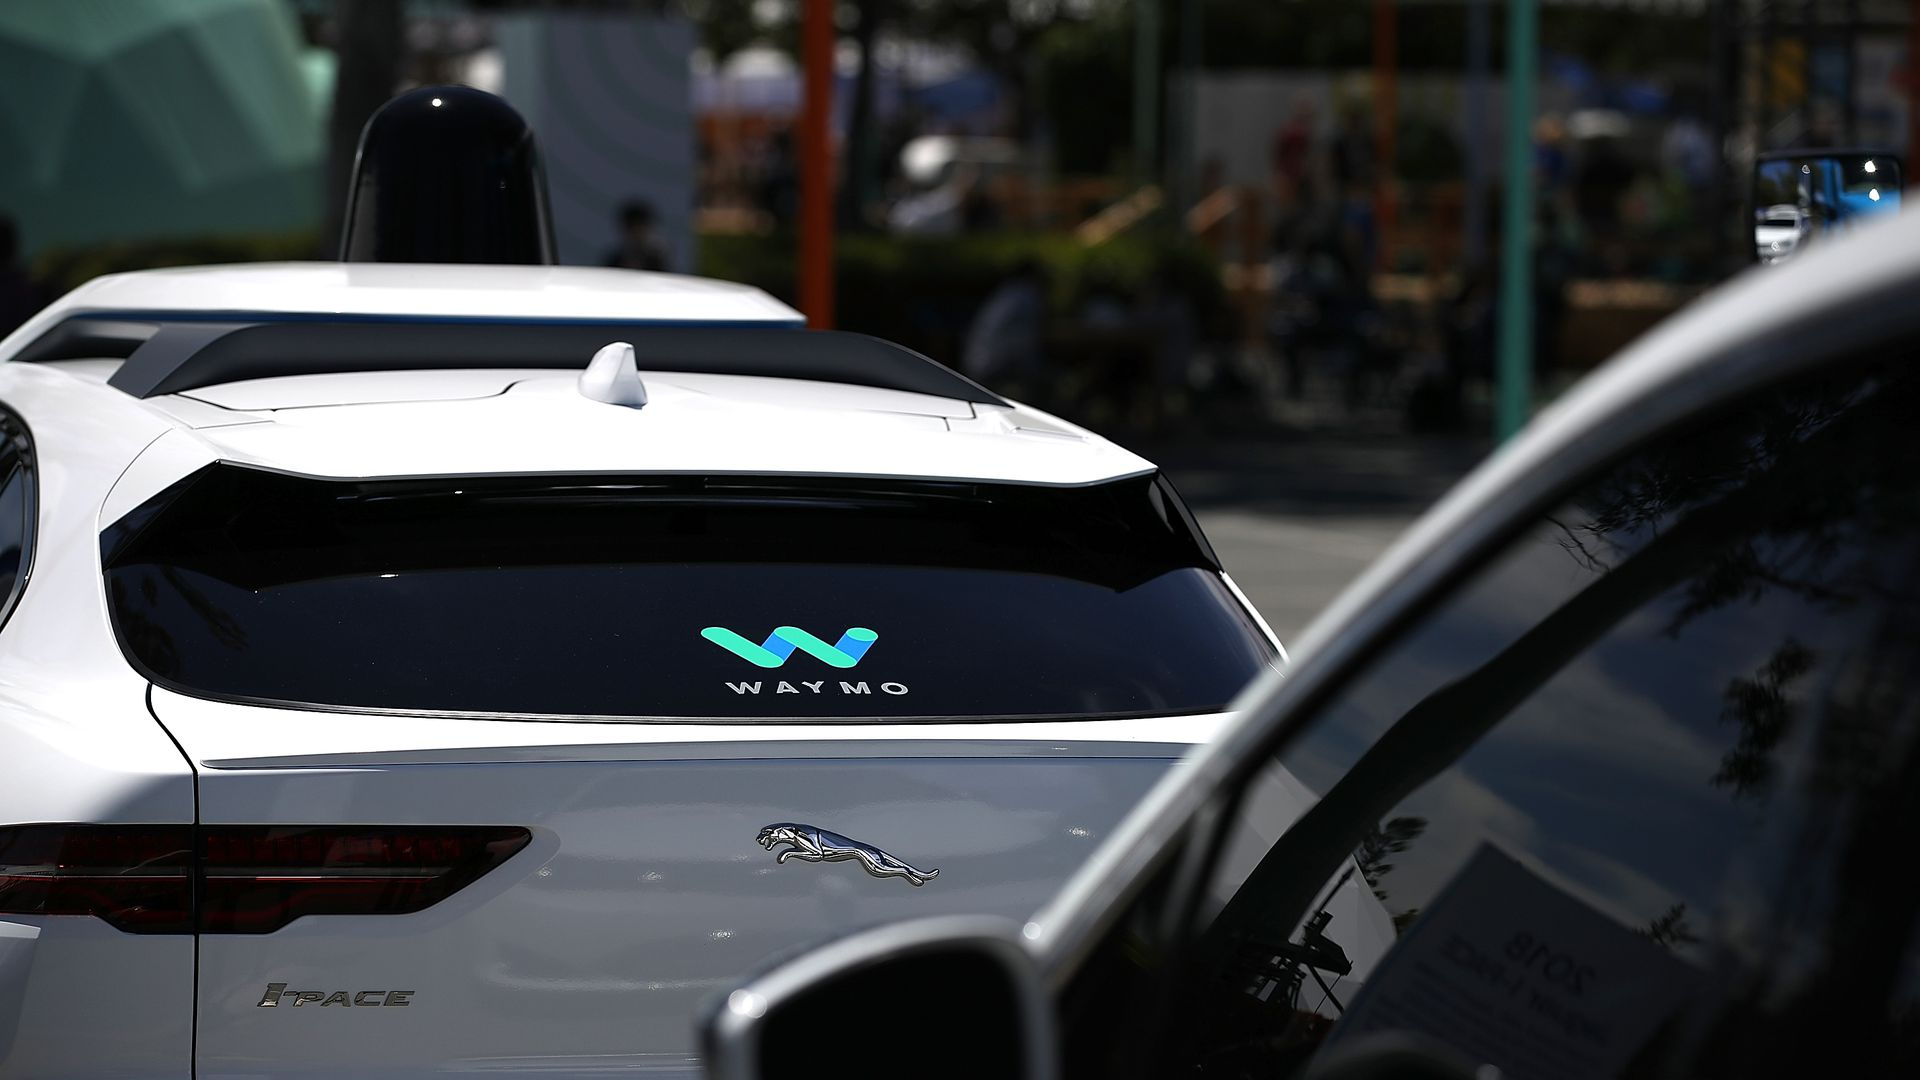 A self-driving car with the Waymo logo on its back windshield